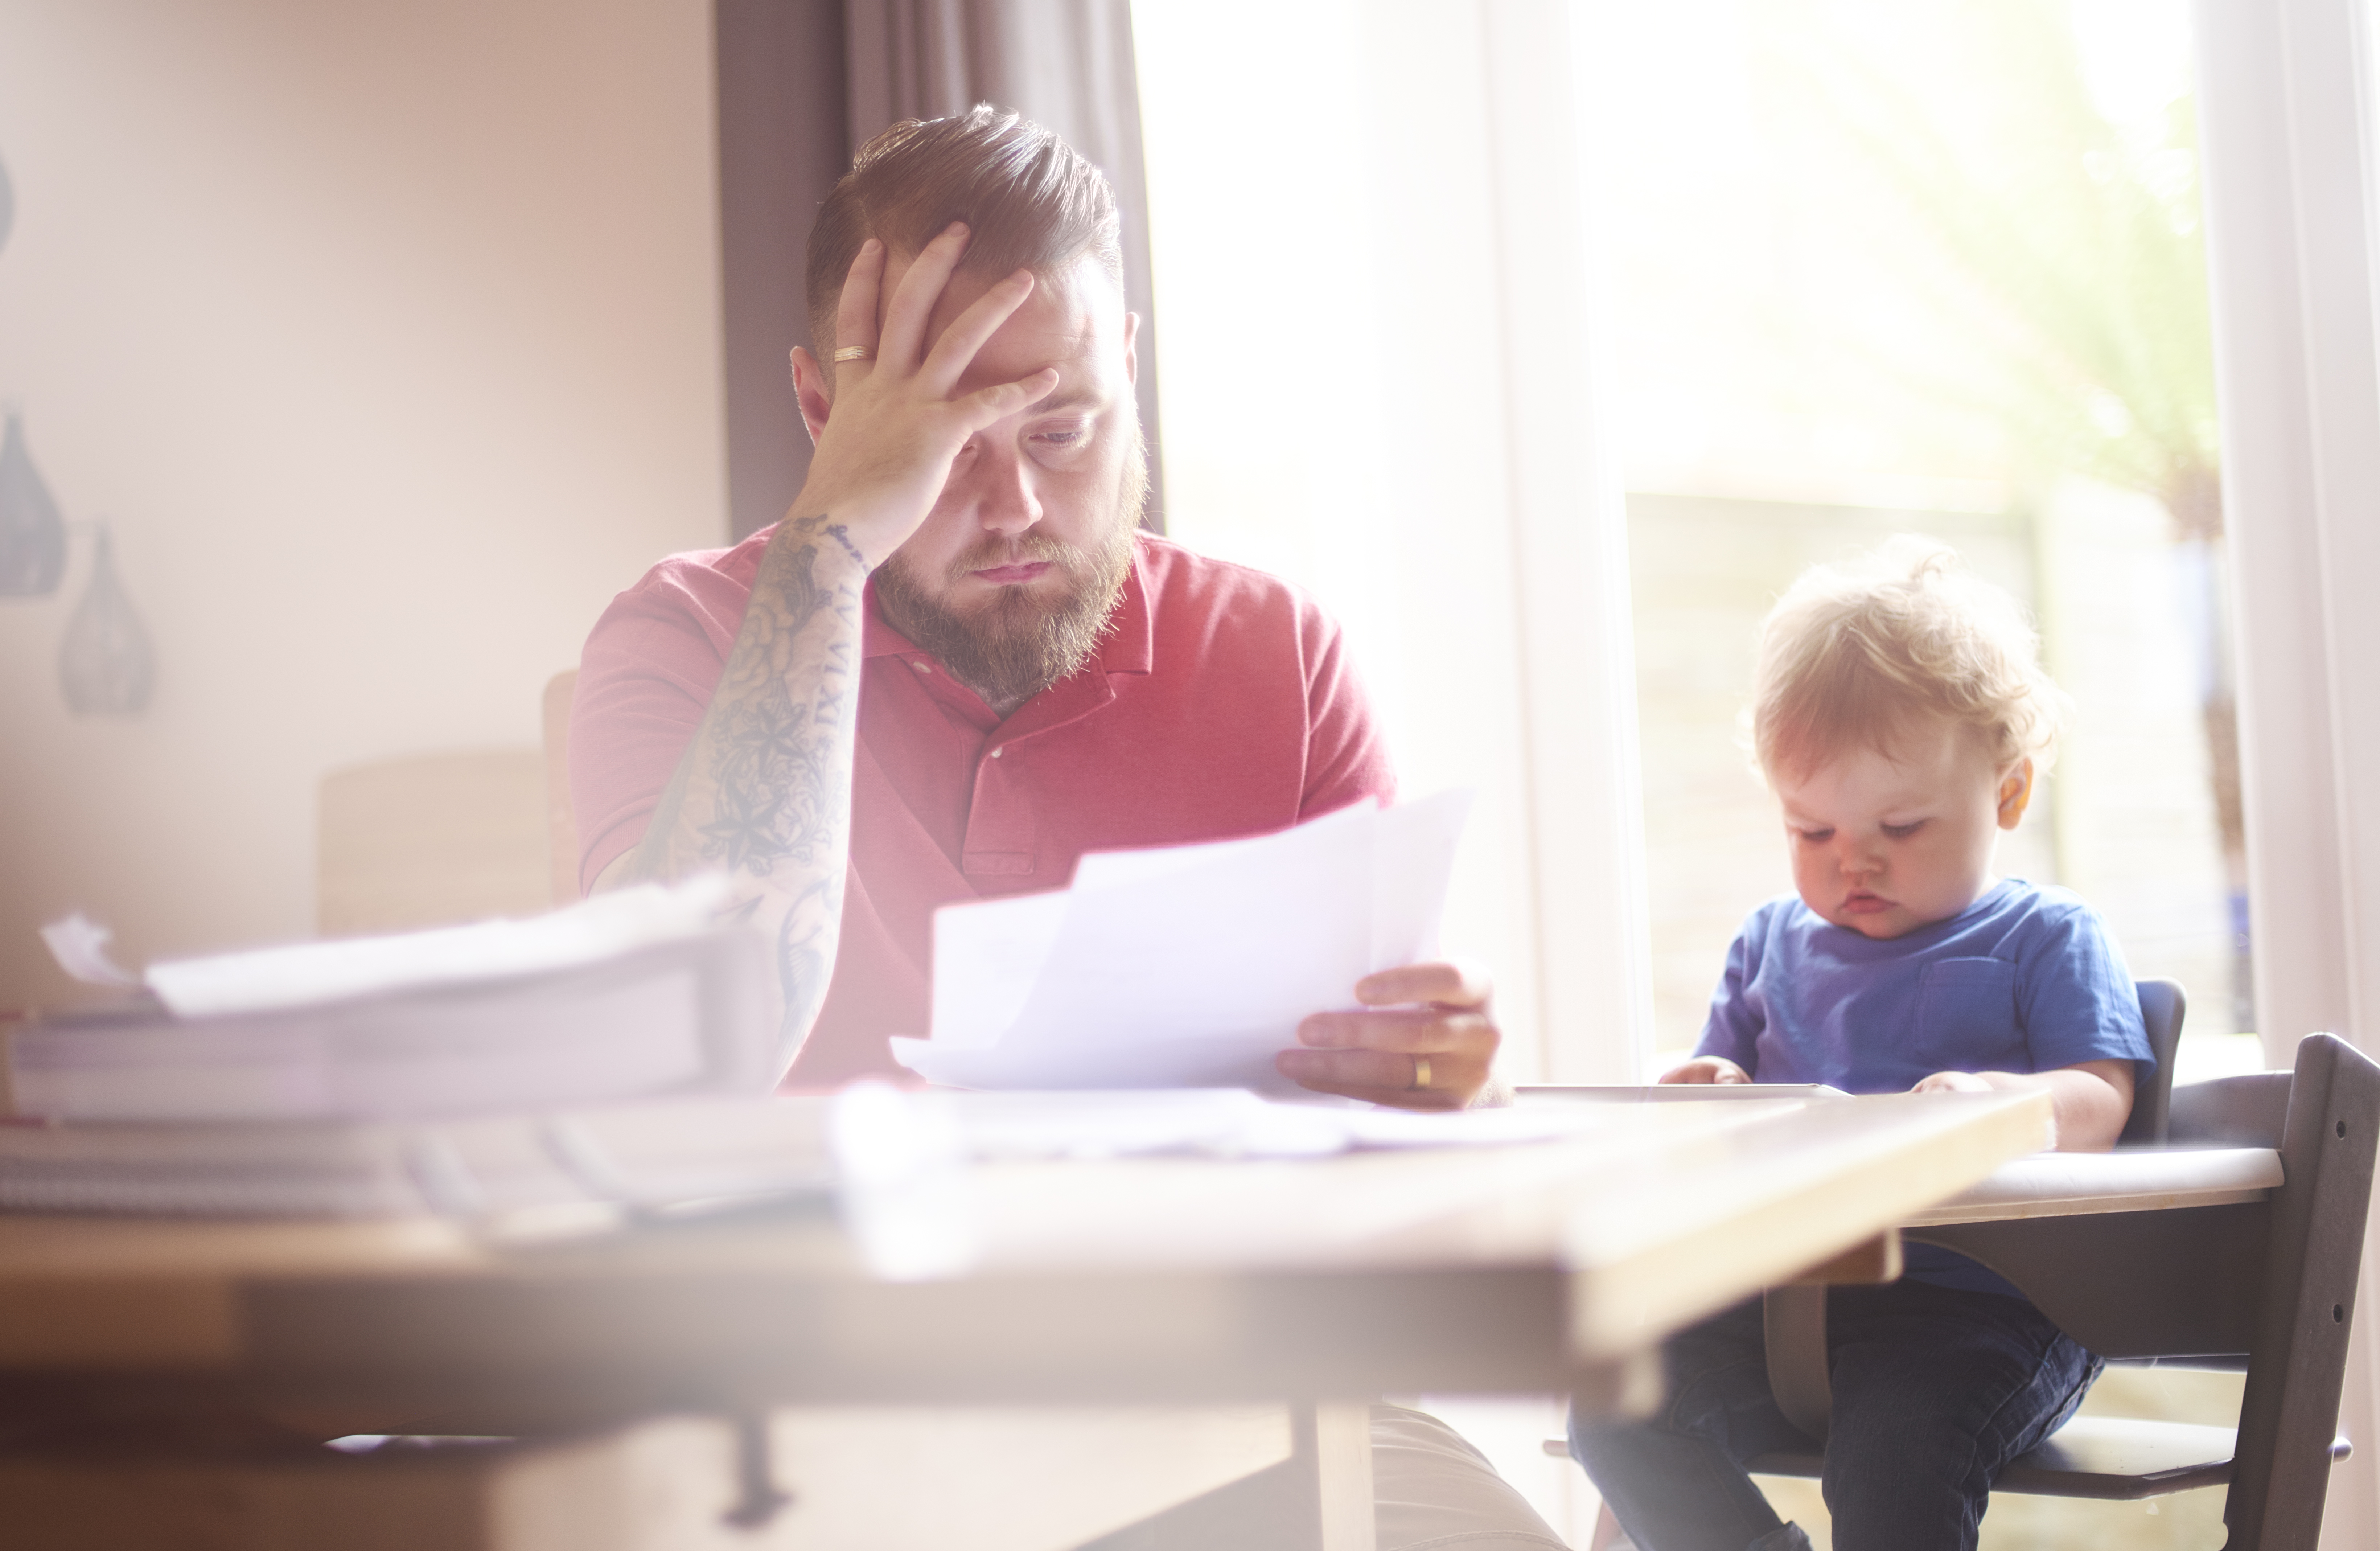 A father sits with his toddler at the dining table. He is reading through his latest bank statements and final demands. He his head in his hands trying to work out how to settle his financial difficulties. His son is sat in his highchair next to him.